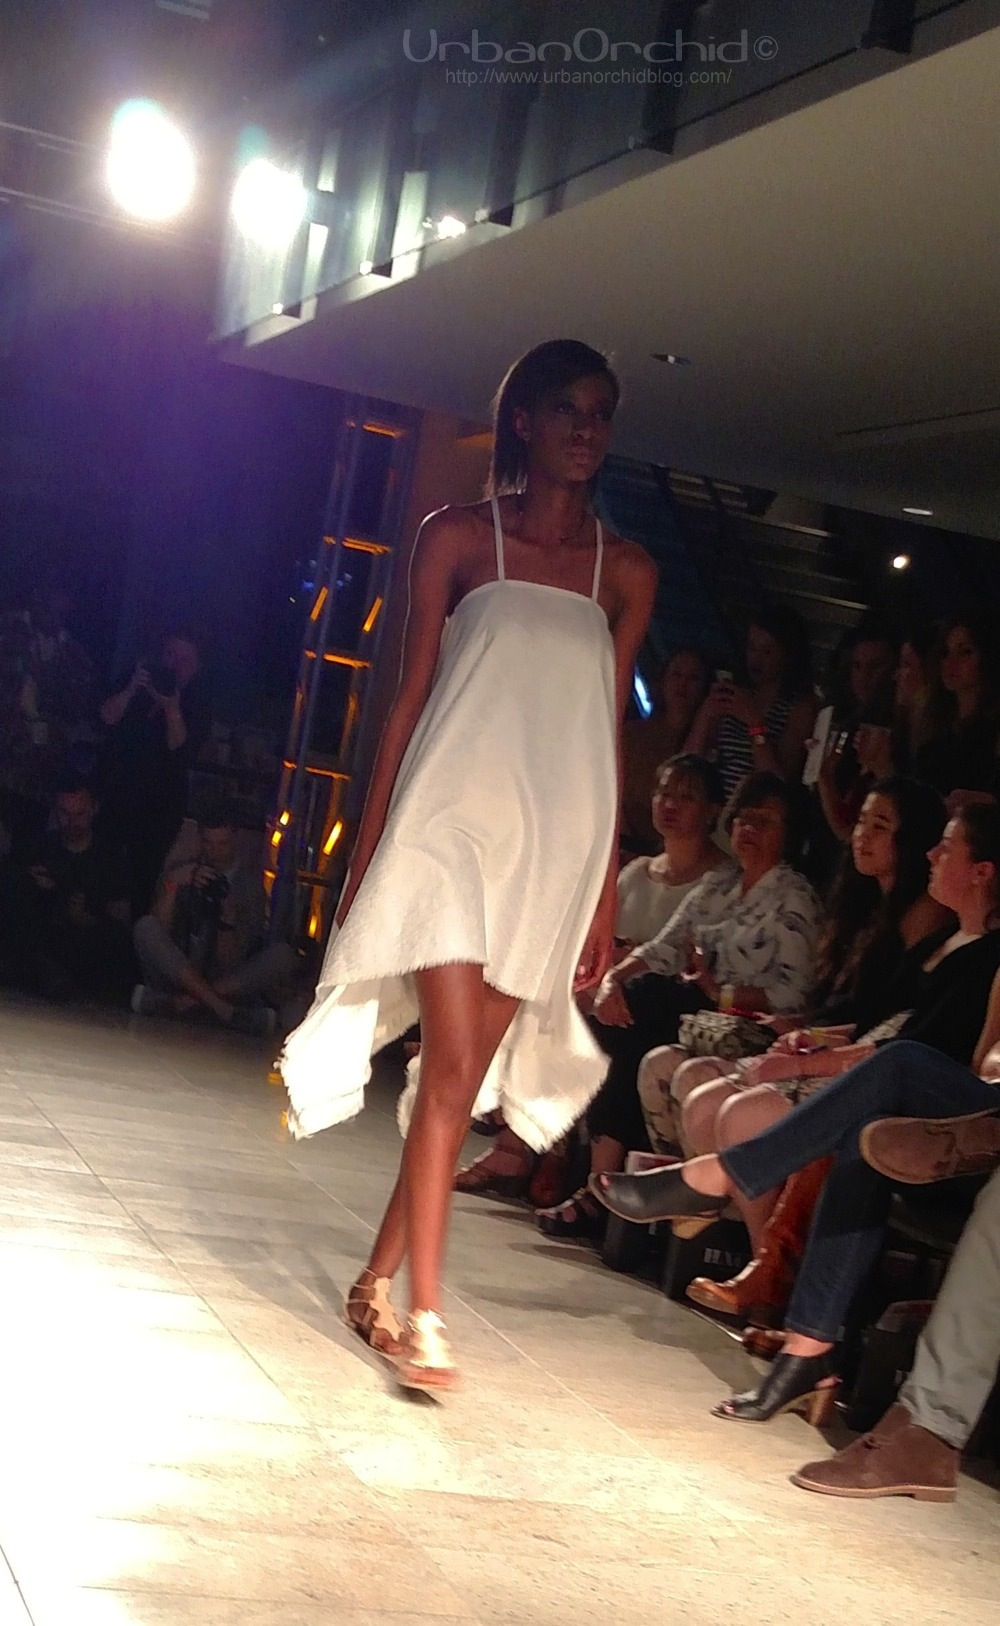 Floaty white dress by EMAH from Ellie Hottinger.